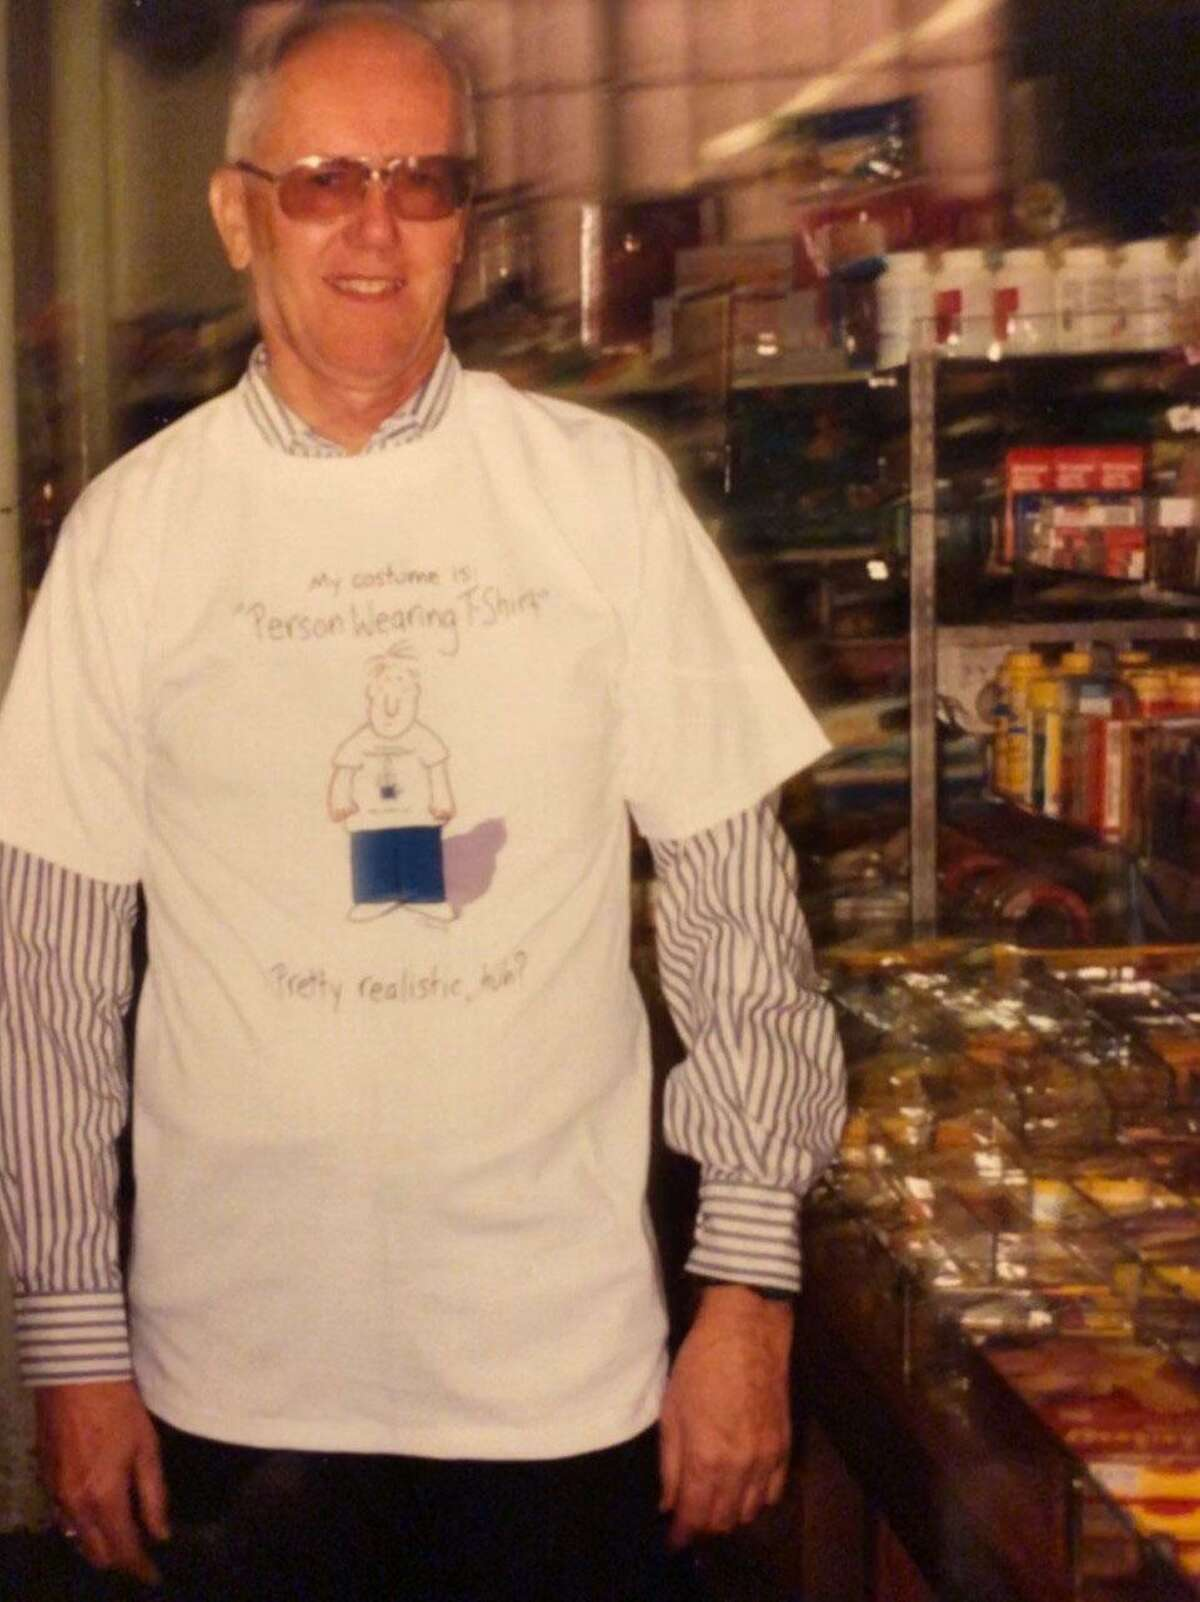 Malcolm Carrier Jr., the last member of the family to own and operate HART'S is shown at Halloween time in this undated photo wearing a T-shirt that reads